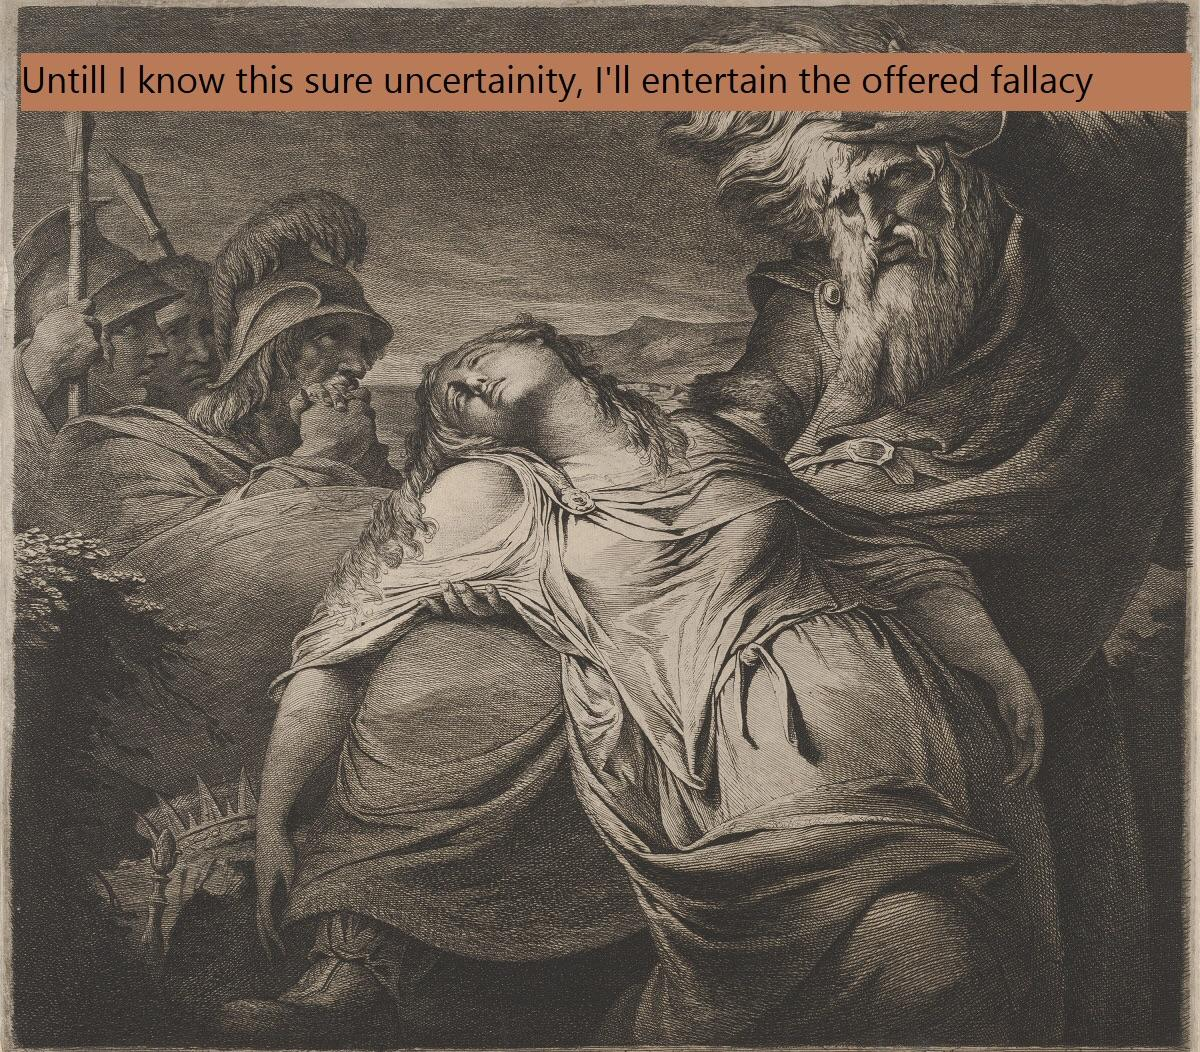 """Until I know this sure uncertainty, I'll entertain the offered fallacy"" – William Shakespeare [1200 x 1052]"